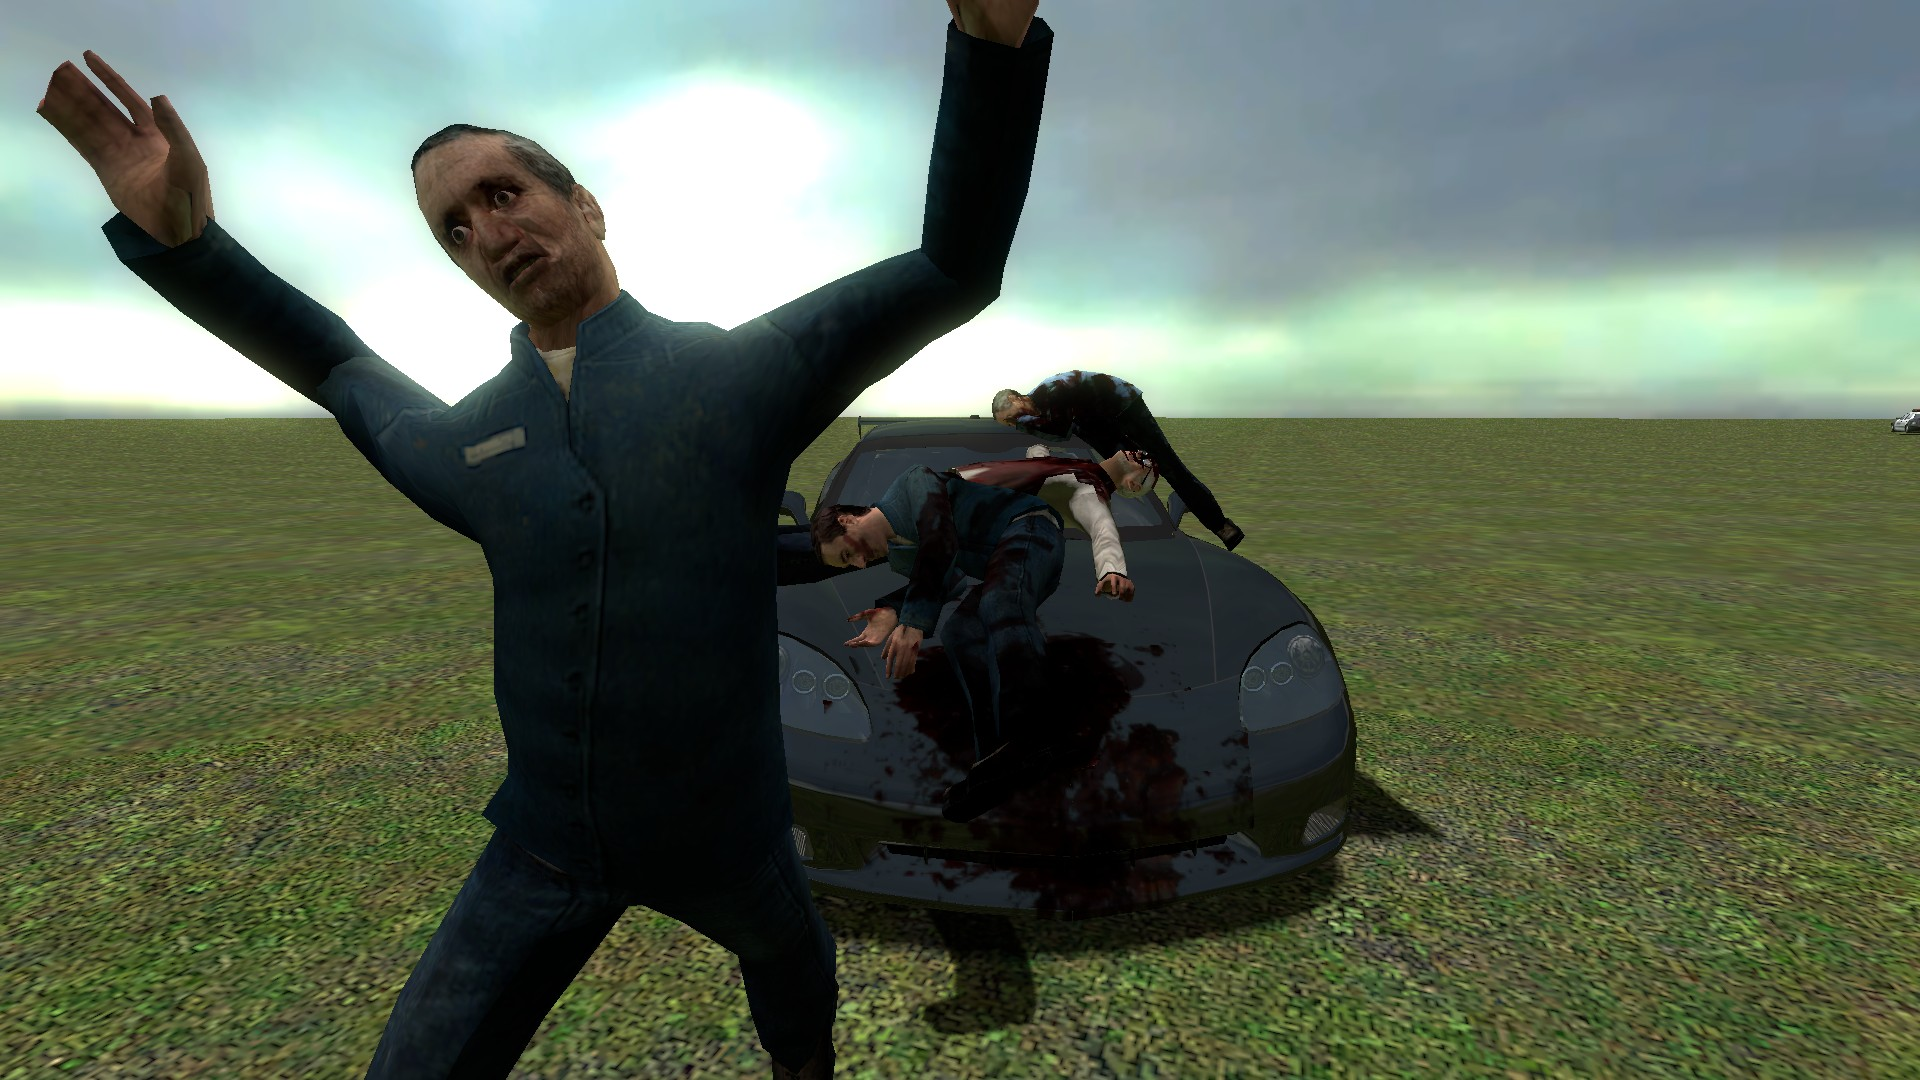 How to download garry's mod for free, with multiplayer (no.